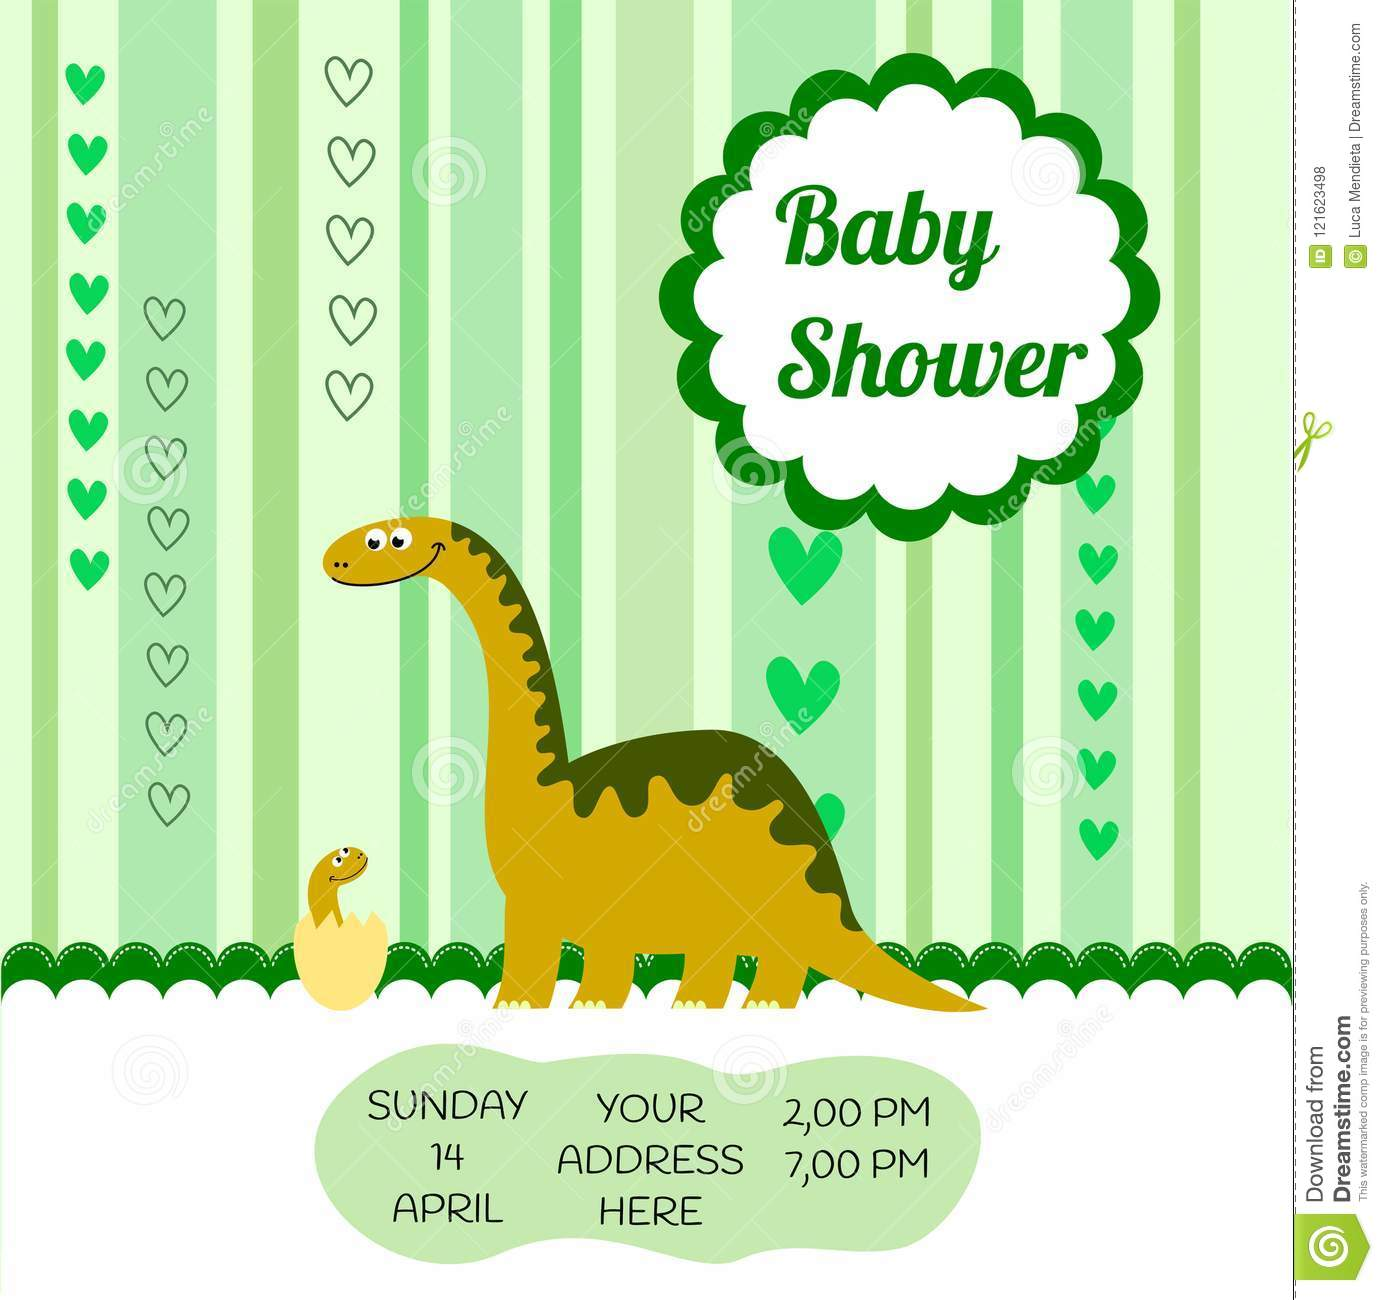 image regarding Free Printable Dinosaur Baby Shower Invitations called Lovable Card Template Of A Kid Shower Invitation With A